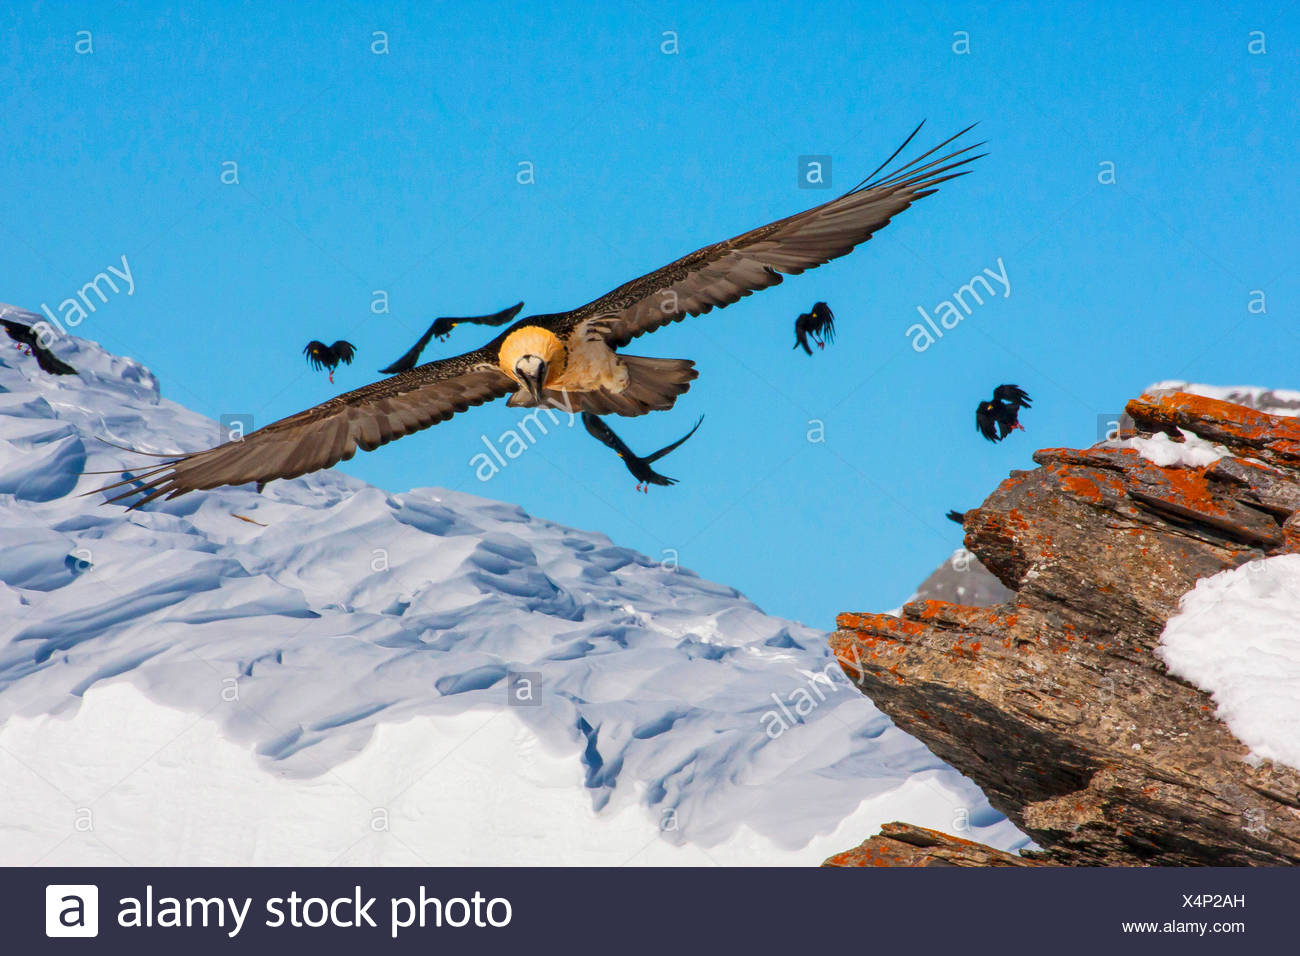 Lammergeier, Bearded Vulture (Gypaetus barbatus), bearded vulture in flight with alpine choughs, Switzerland, Valais, Leukerbad - Stock Image